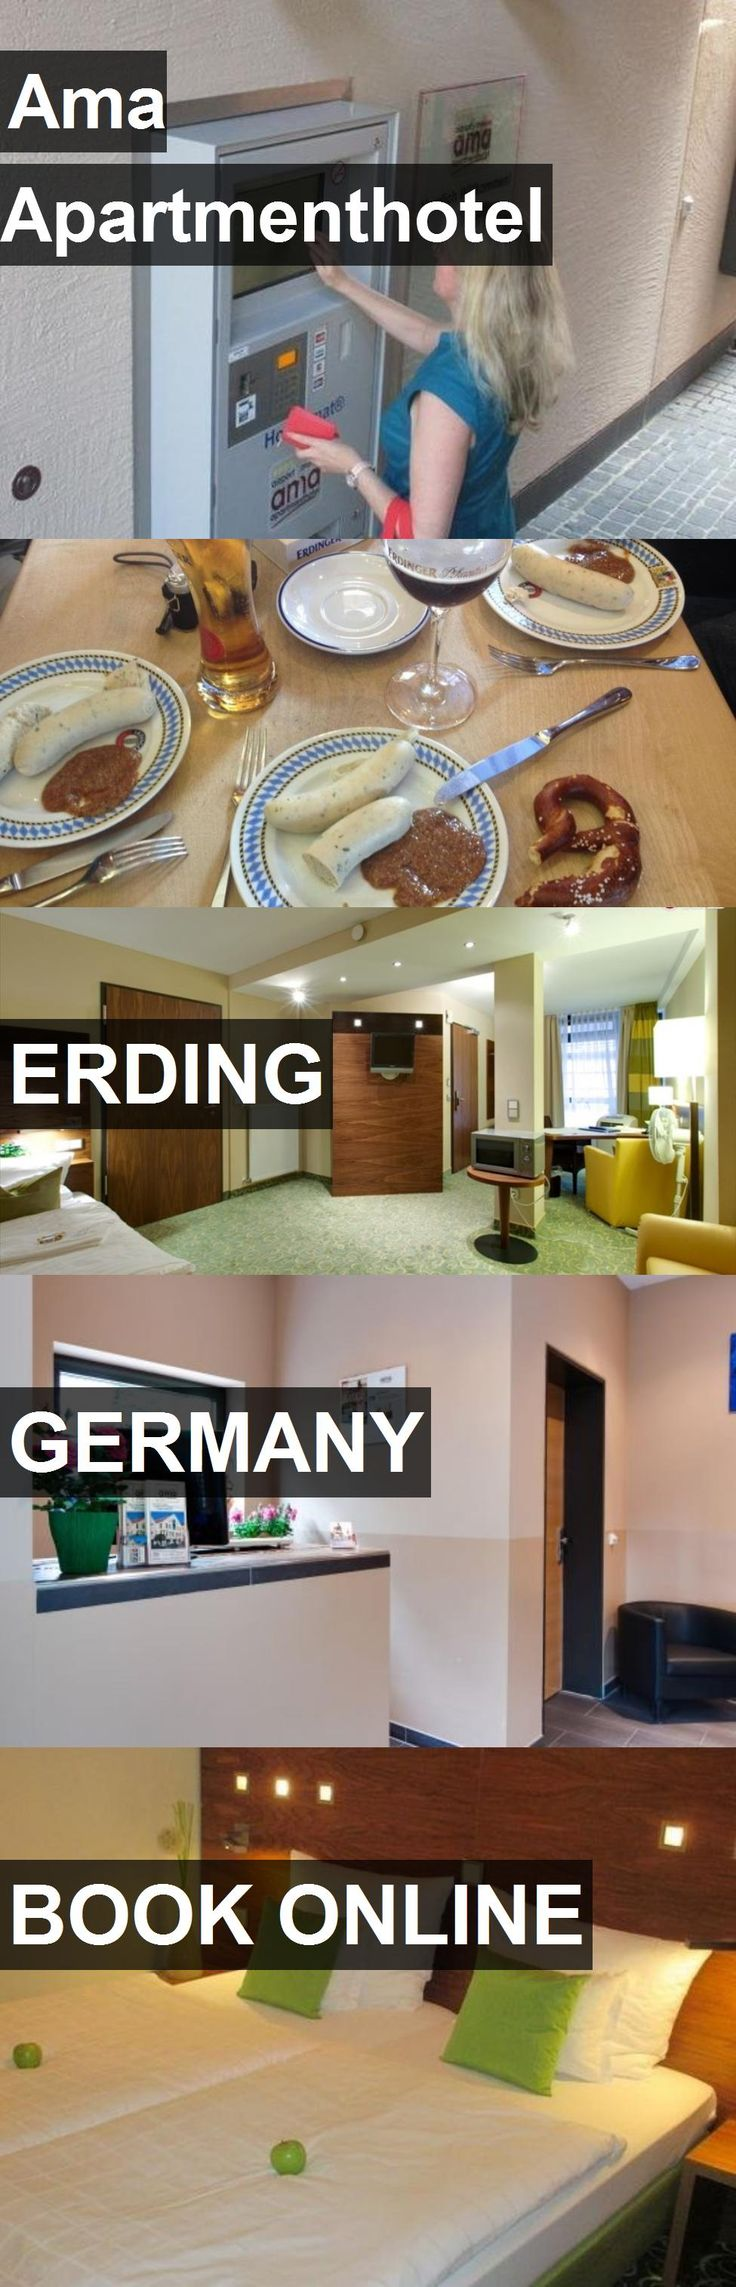 Ama Apartmenthotel in Erding, Germany. For more information, photos, reviews and best prices please follow the link. #Germany #Erding #travel #vacation #hotel #apartment